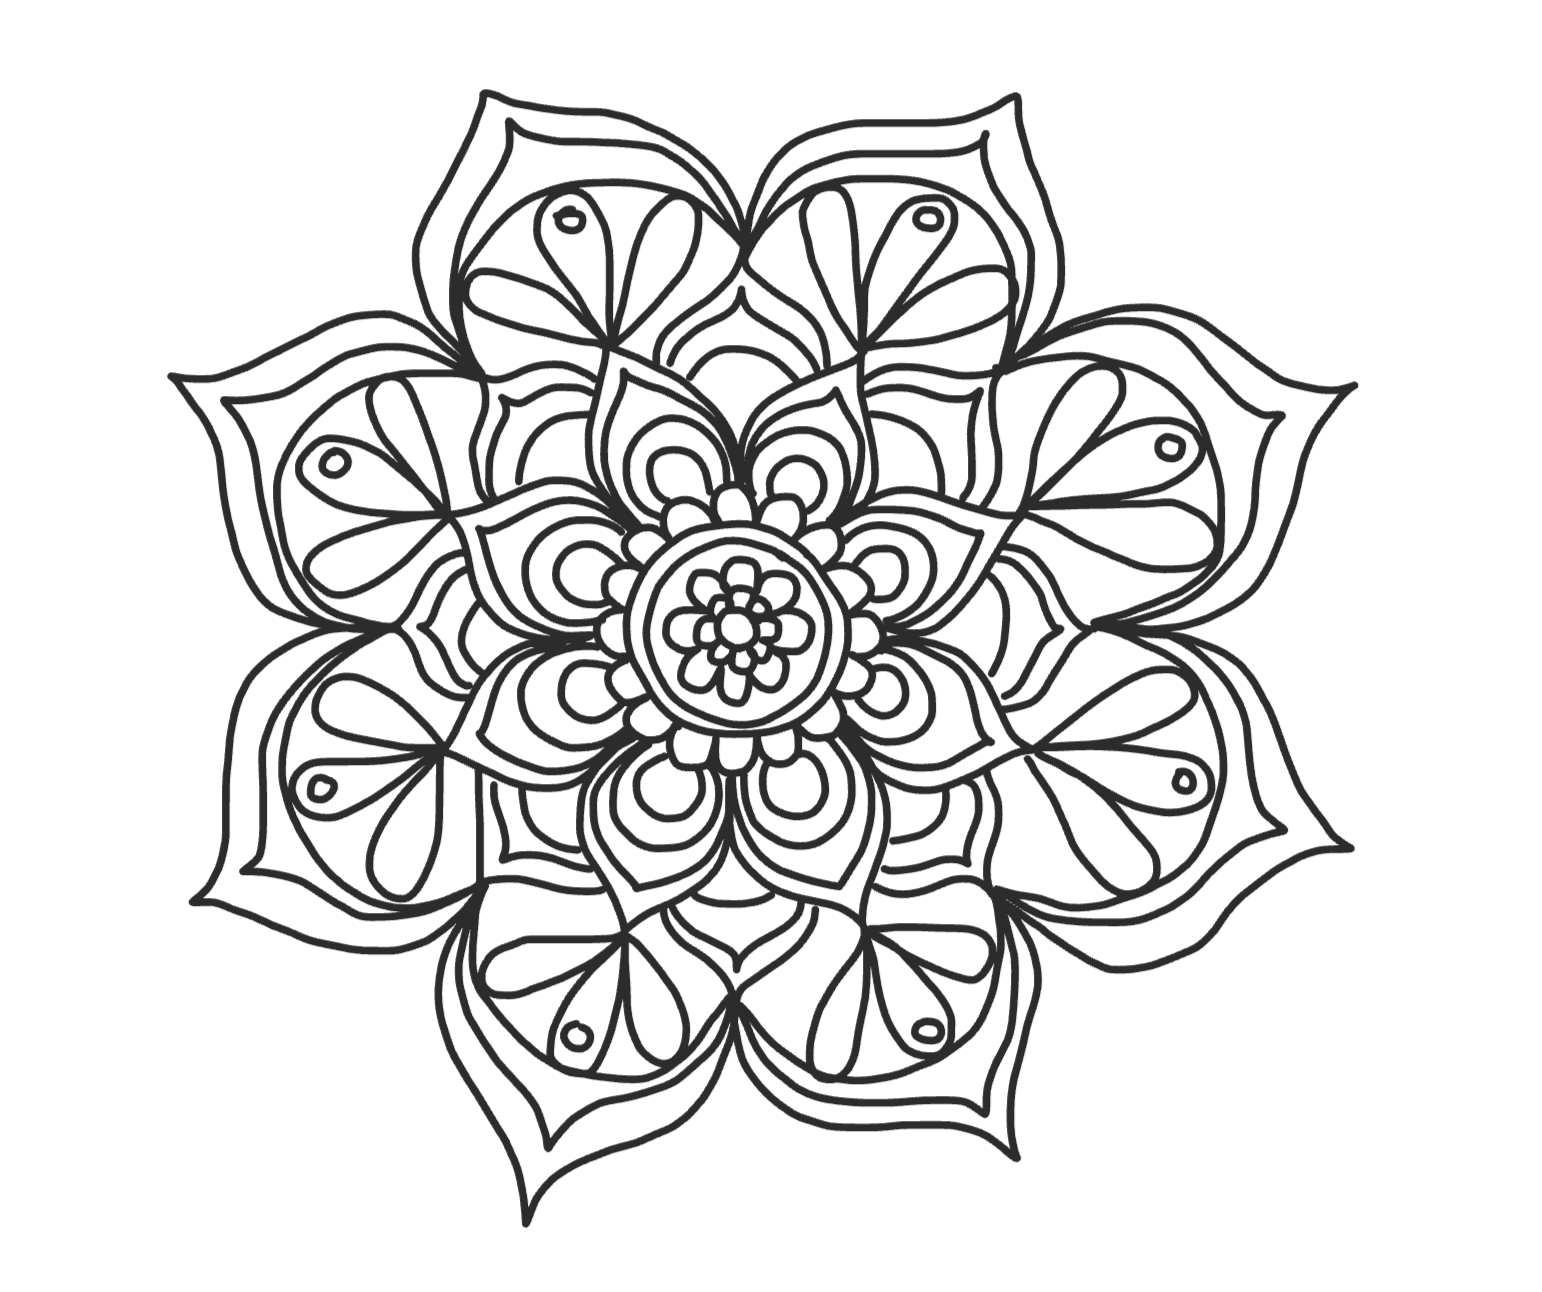 flower pattern coloring pages 15 pics of easy coloring pages paisley pattern paisley pattern coloring flower pages